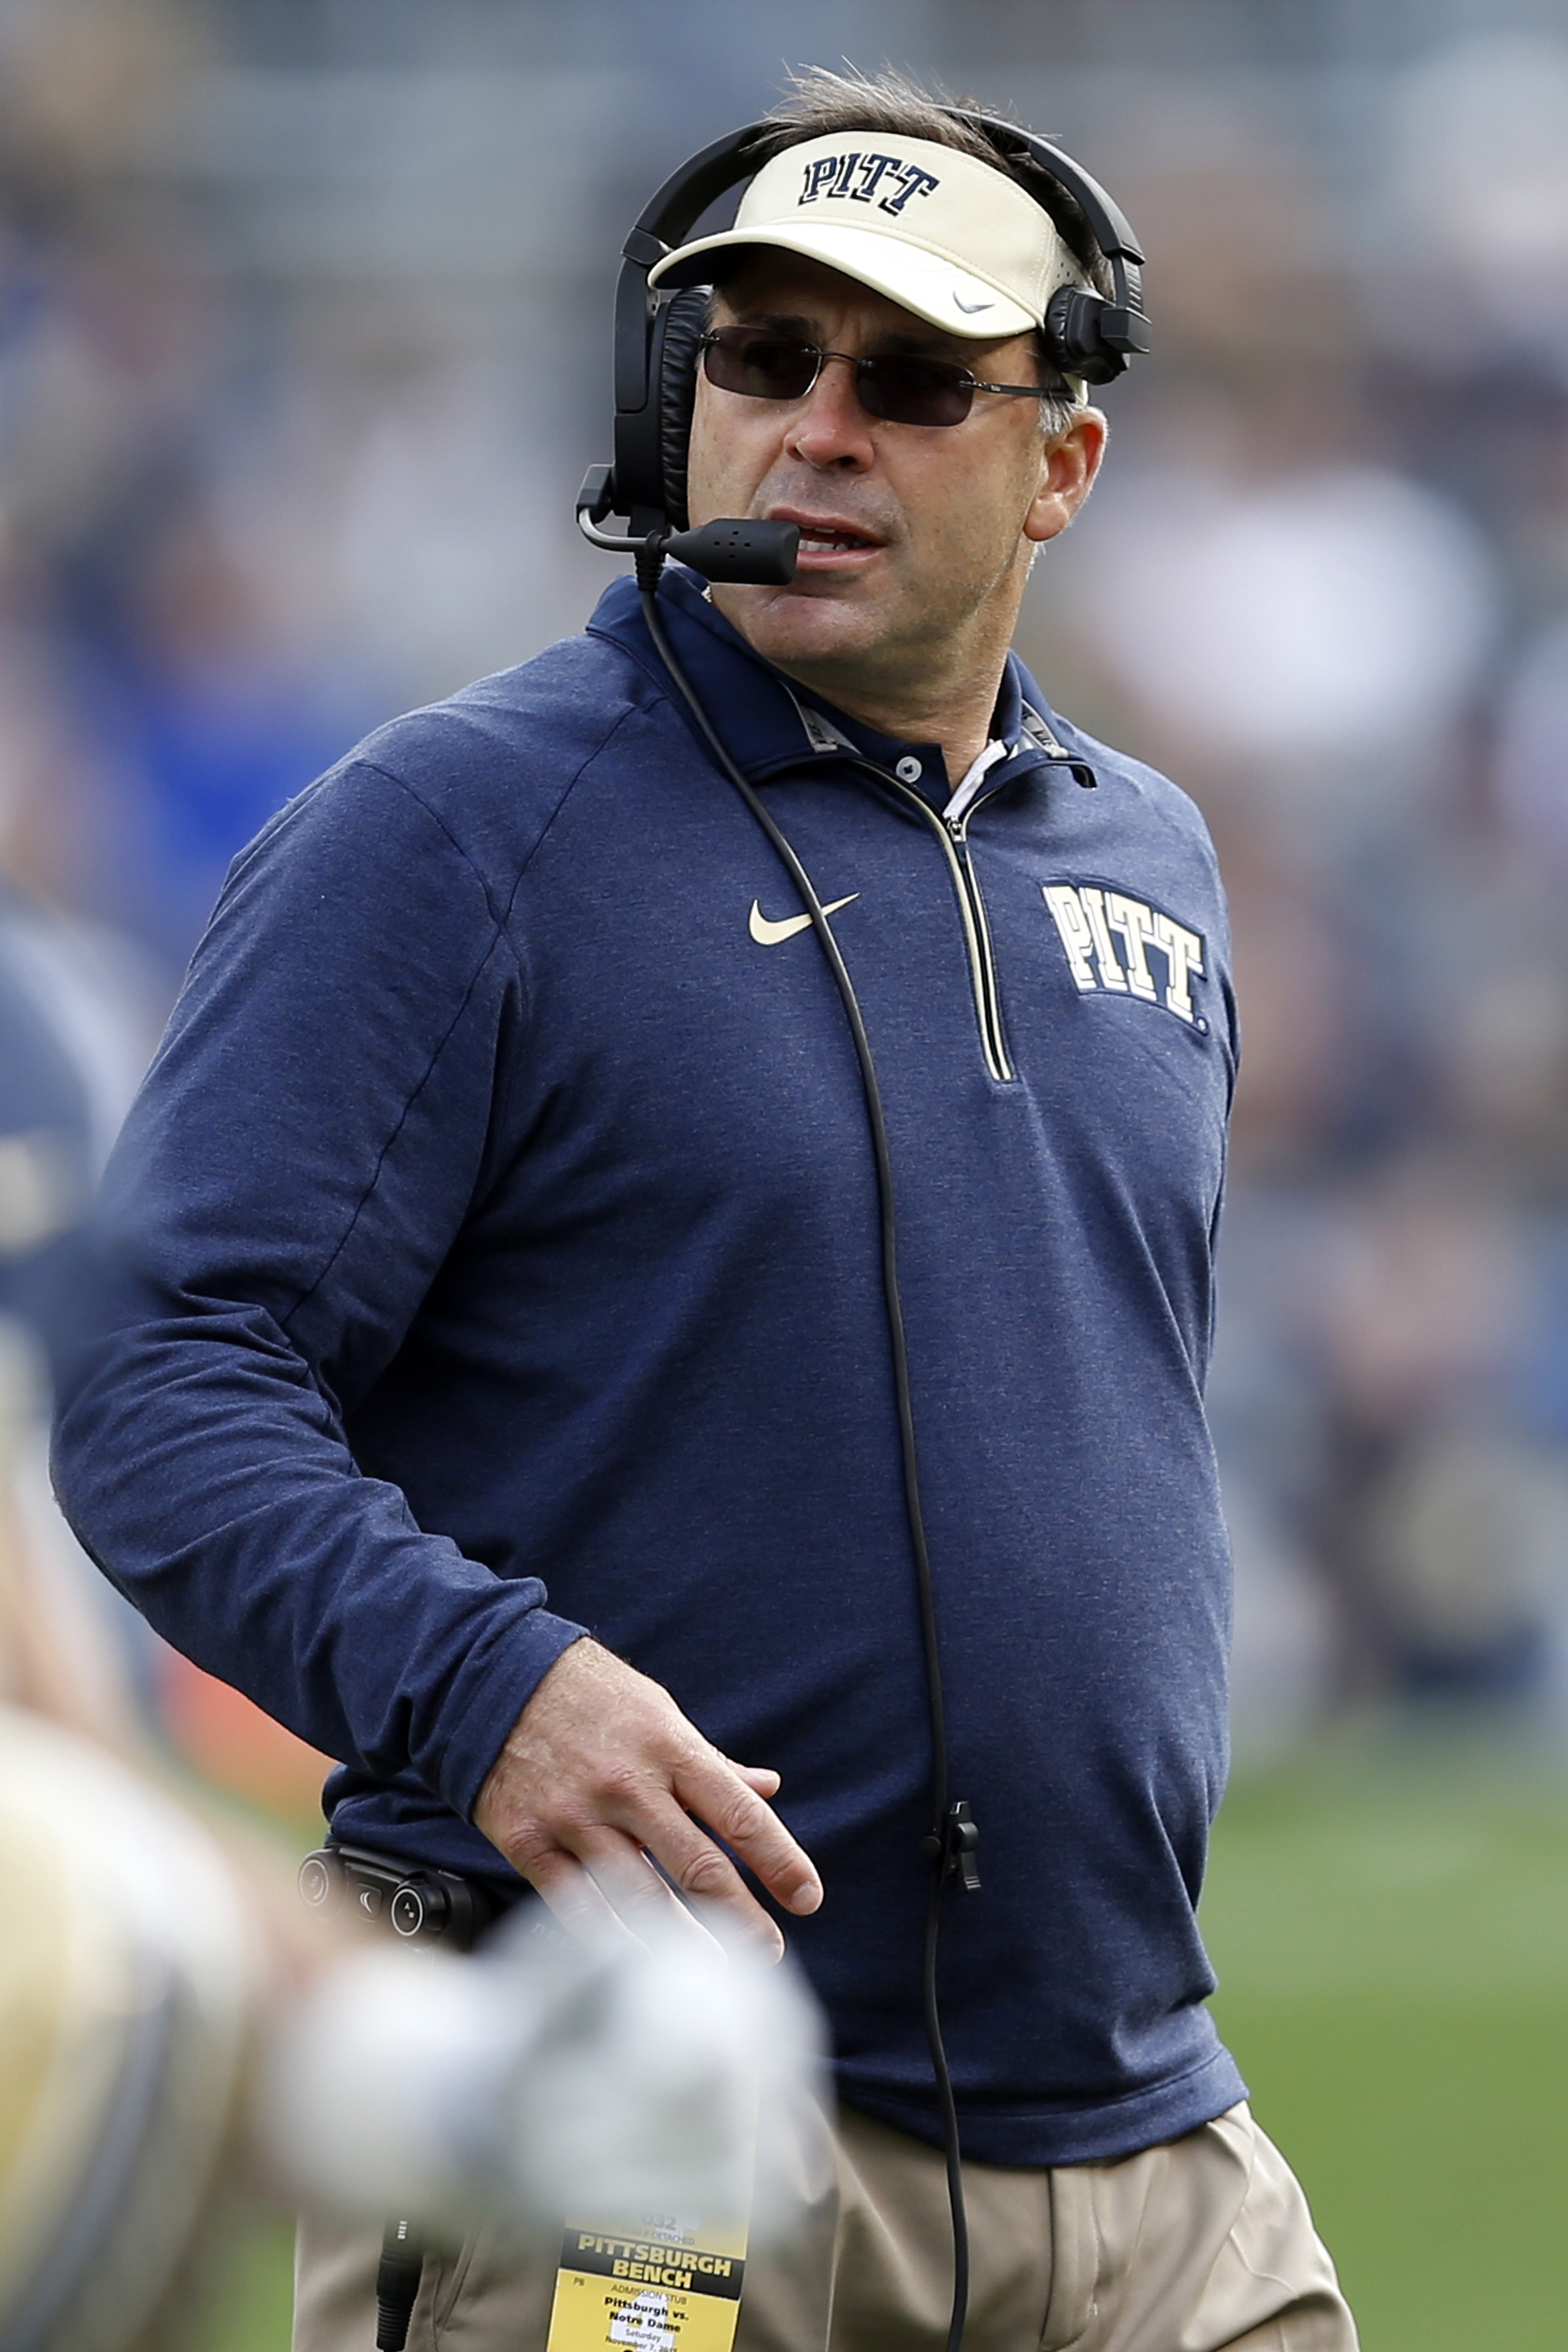 Pittsburgh head coach Pat Narduzzi looks back at the field during a timeout in the second quarter of an NCAA football game against Notre Dame, Saturday, Nov. 7, 2015, in Pittsburgh. Notre Dame won 42-30. (AP Photo/Keith Srakocic)